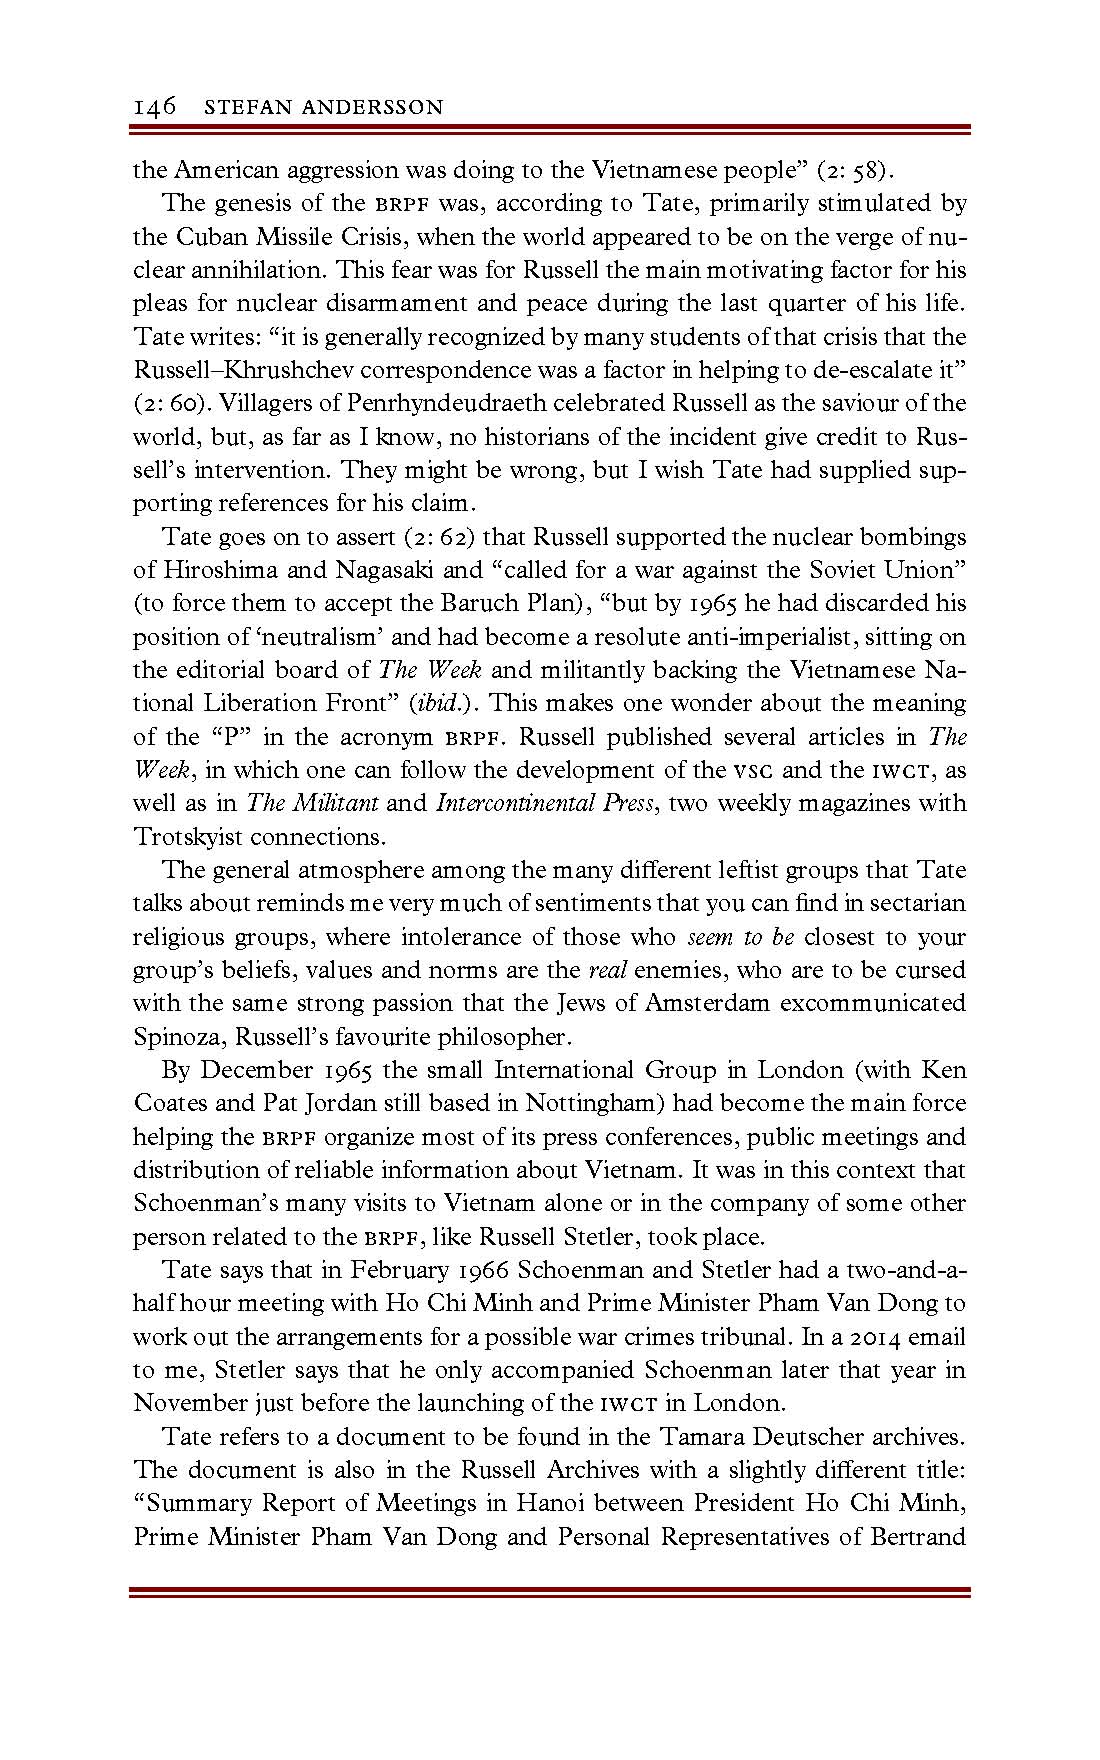 Anderson-- Pages from RJ 3402 050 red-5 (2)-1_Page_12